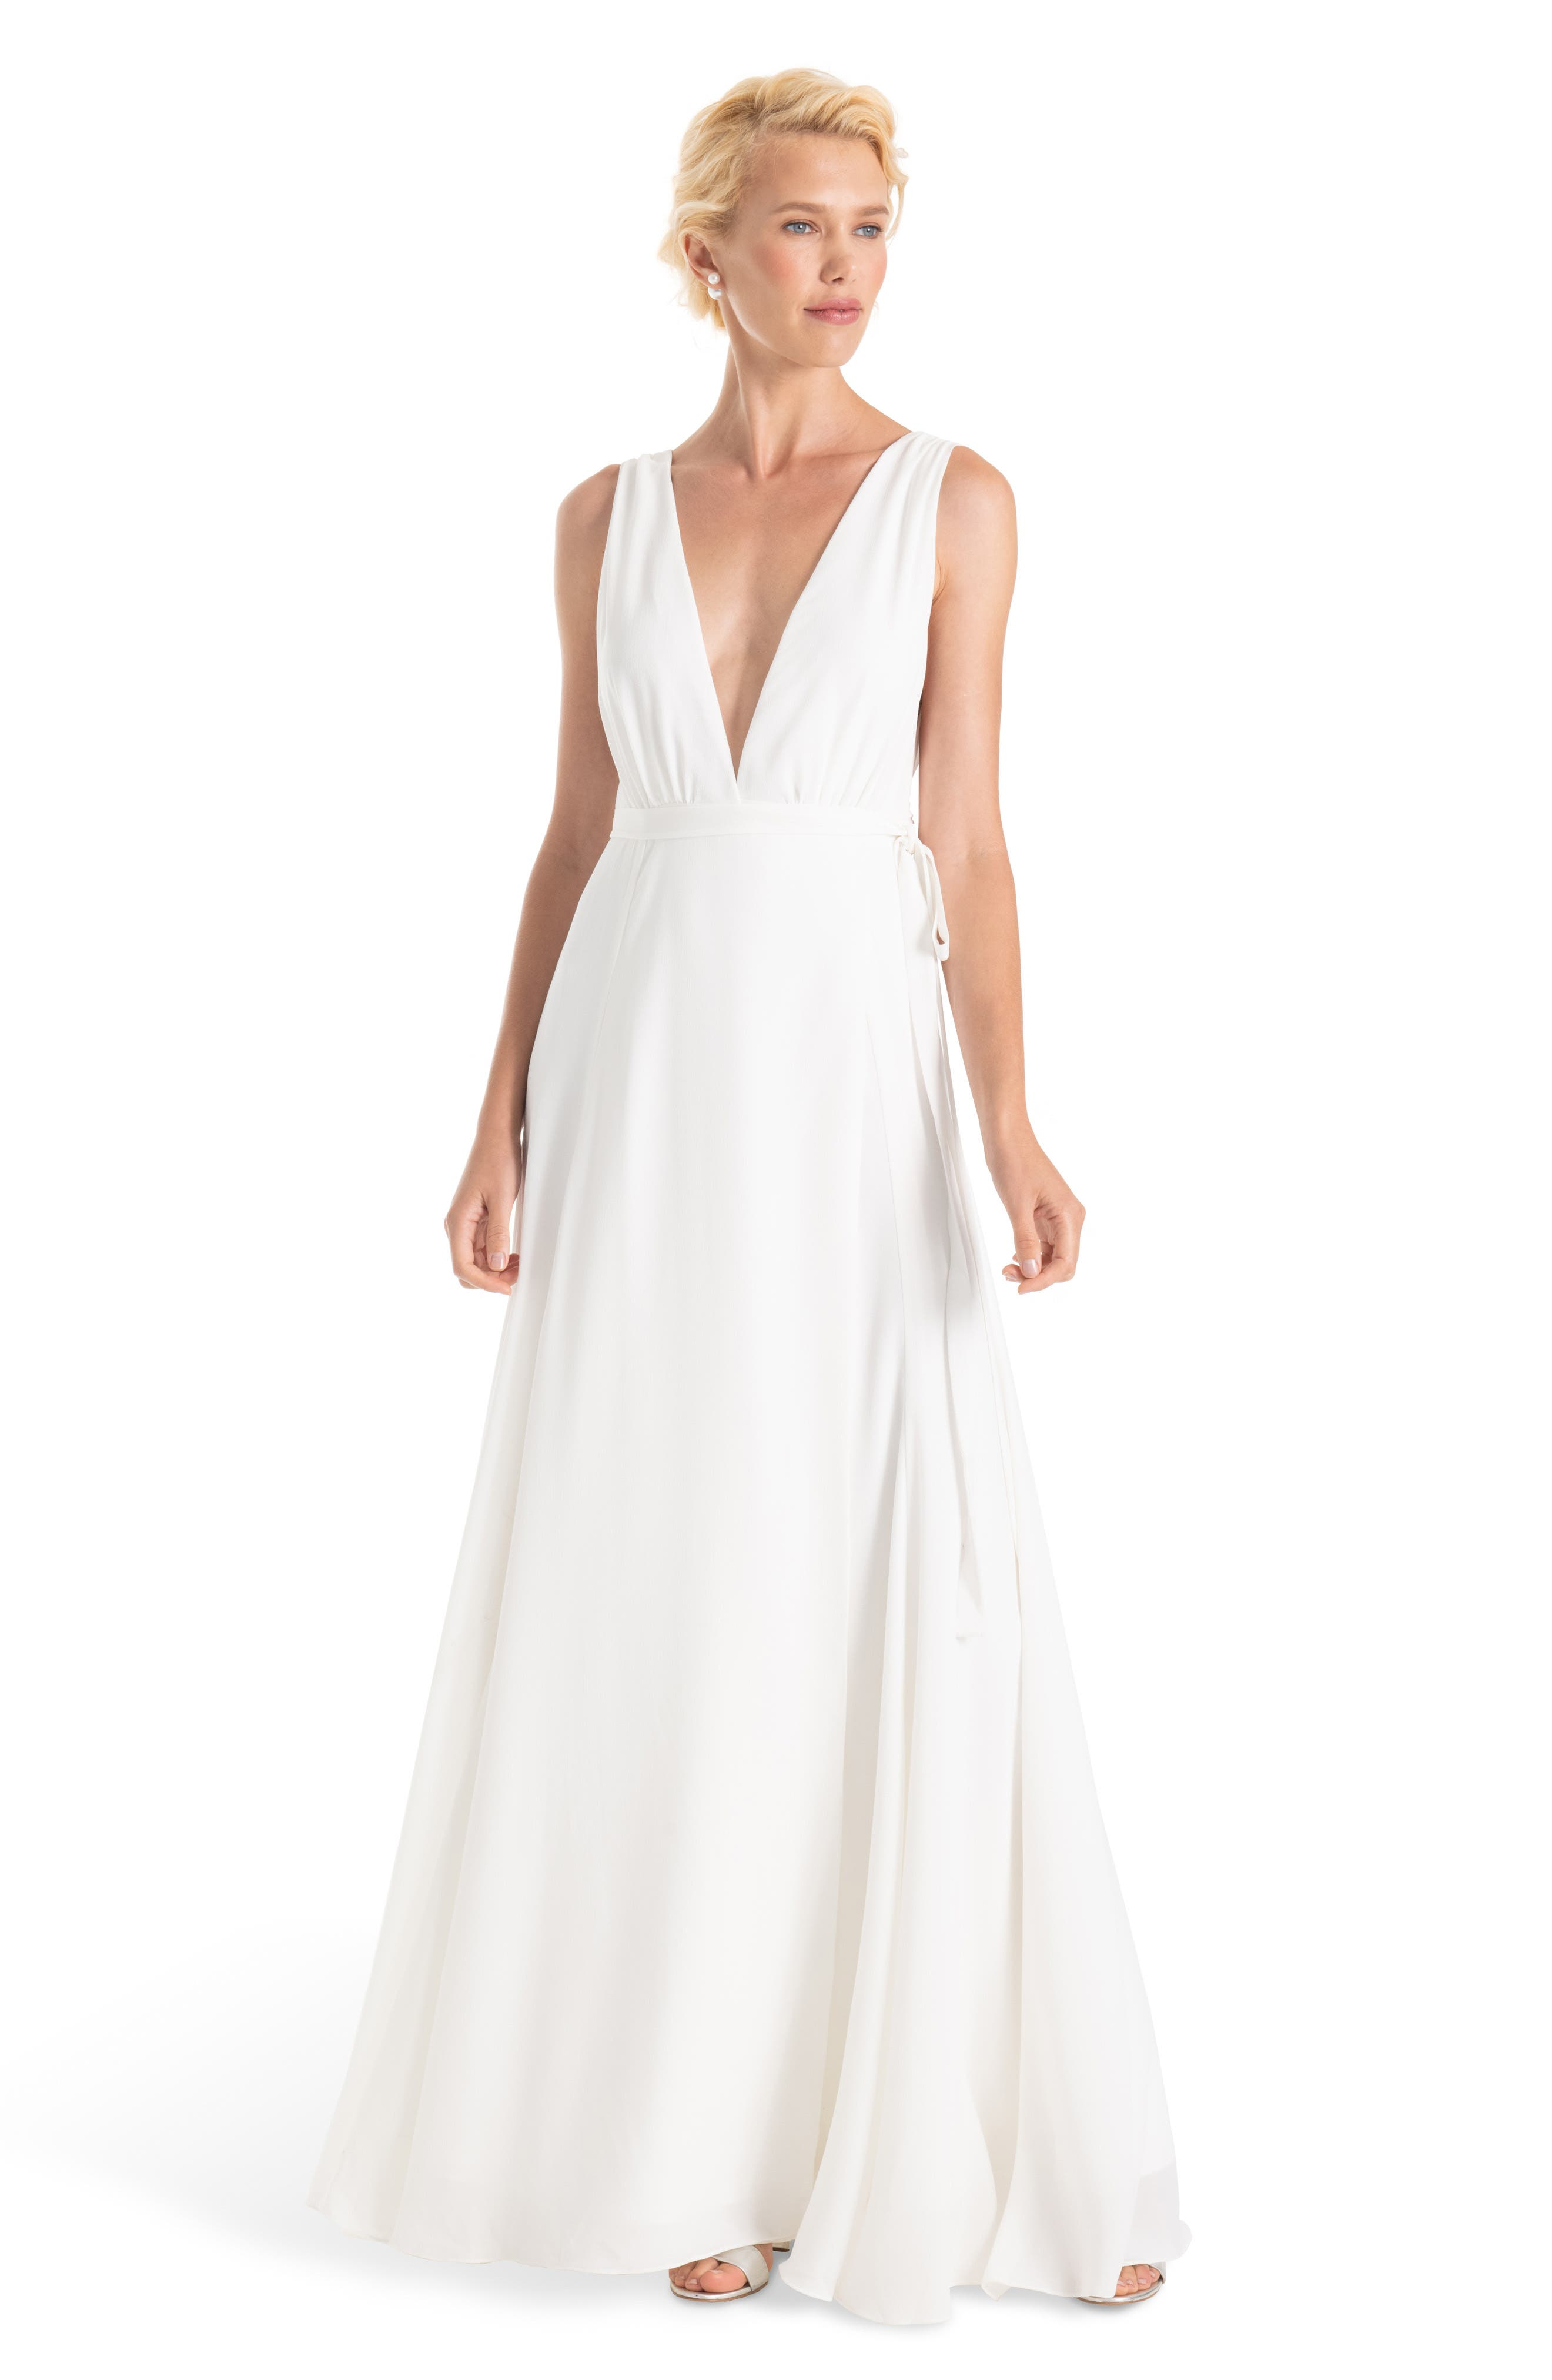 JOANNA AUGUST, Jagger Plunging Wrap Dress, Main thumbnail 1, color, WHITE